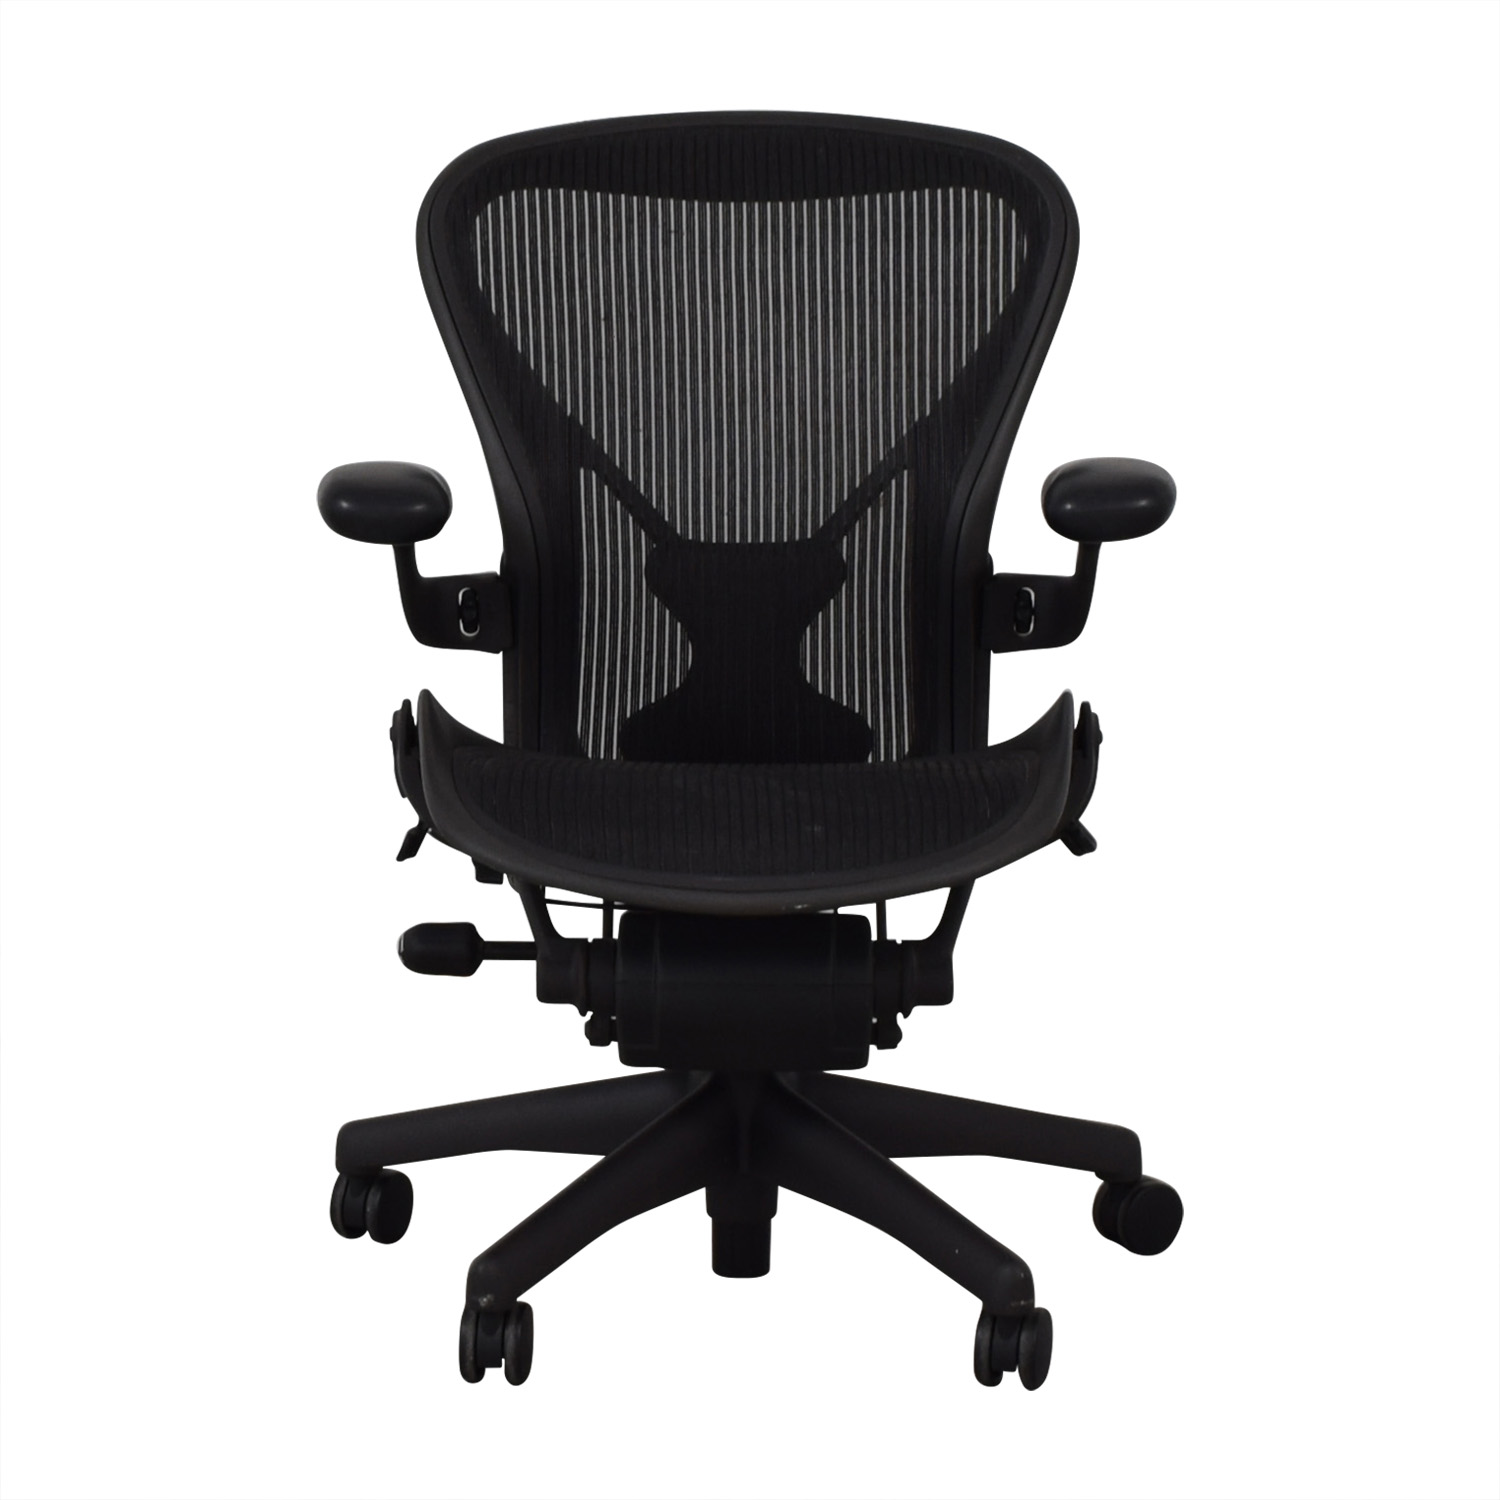 Herman Miller Herman Miller Aeron Desk Chair coupon